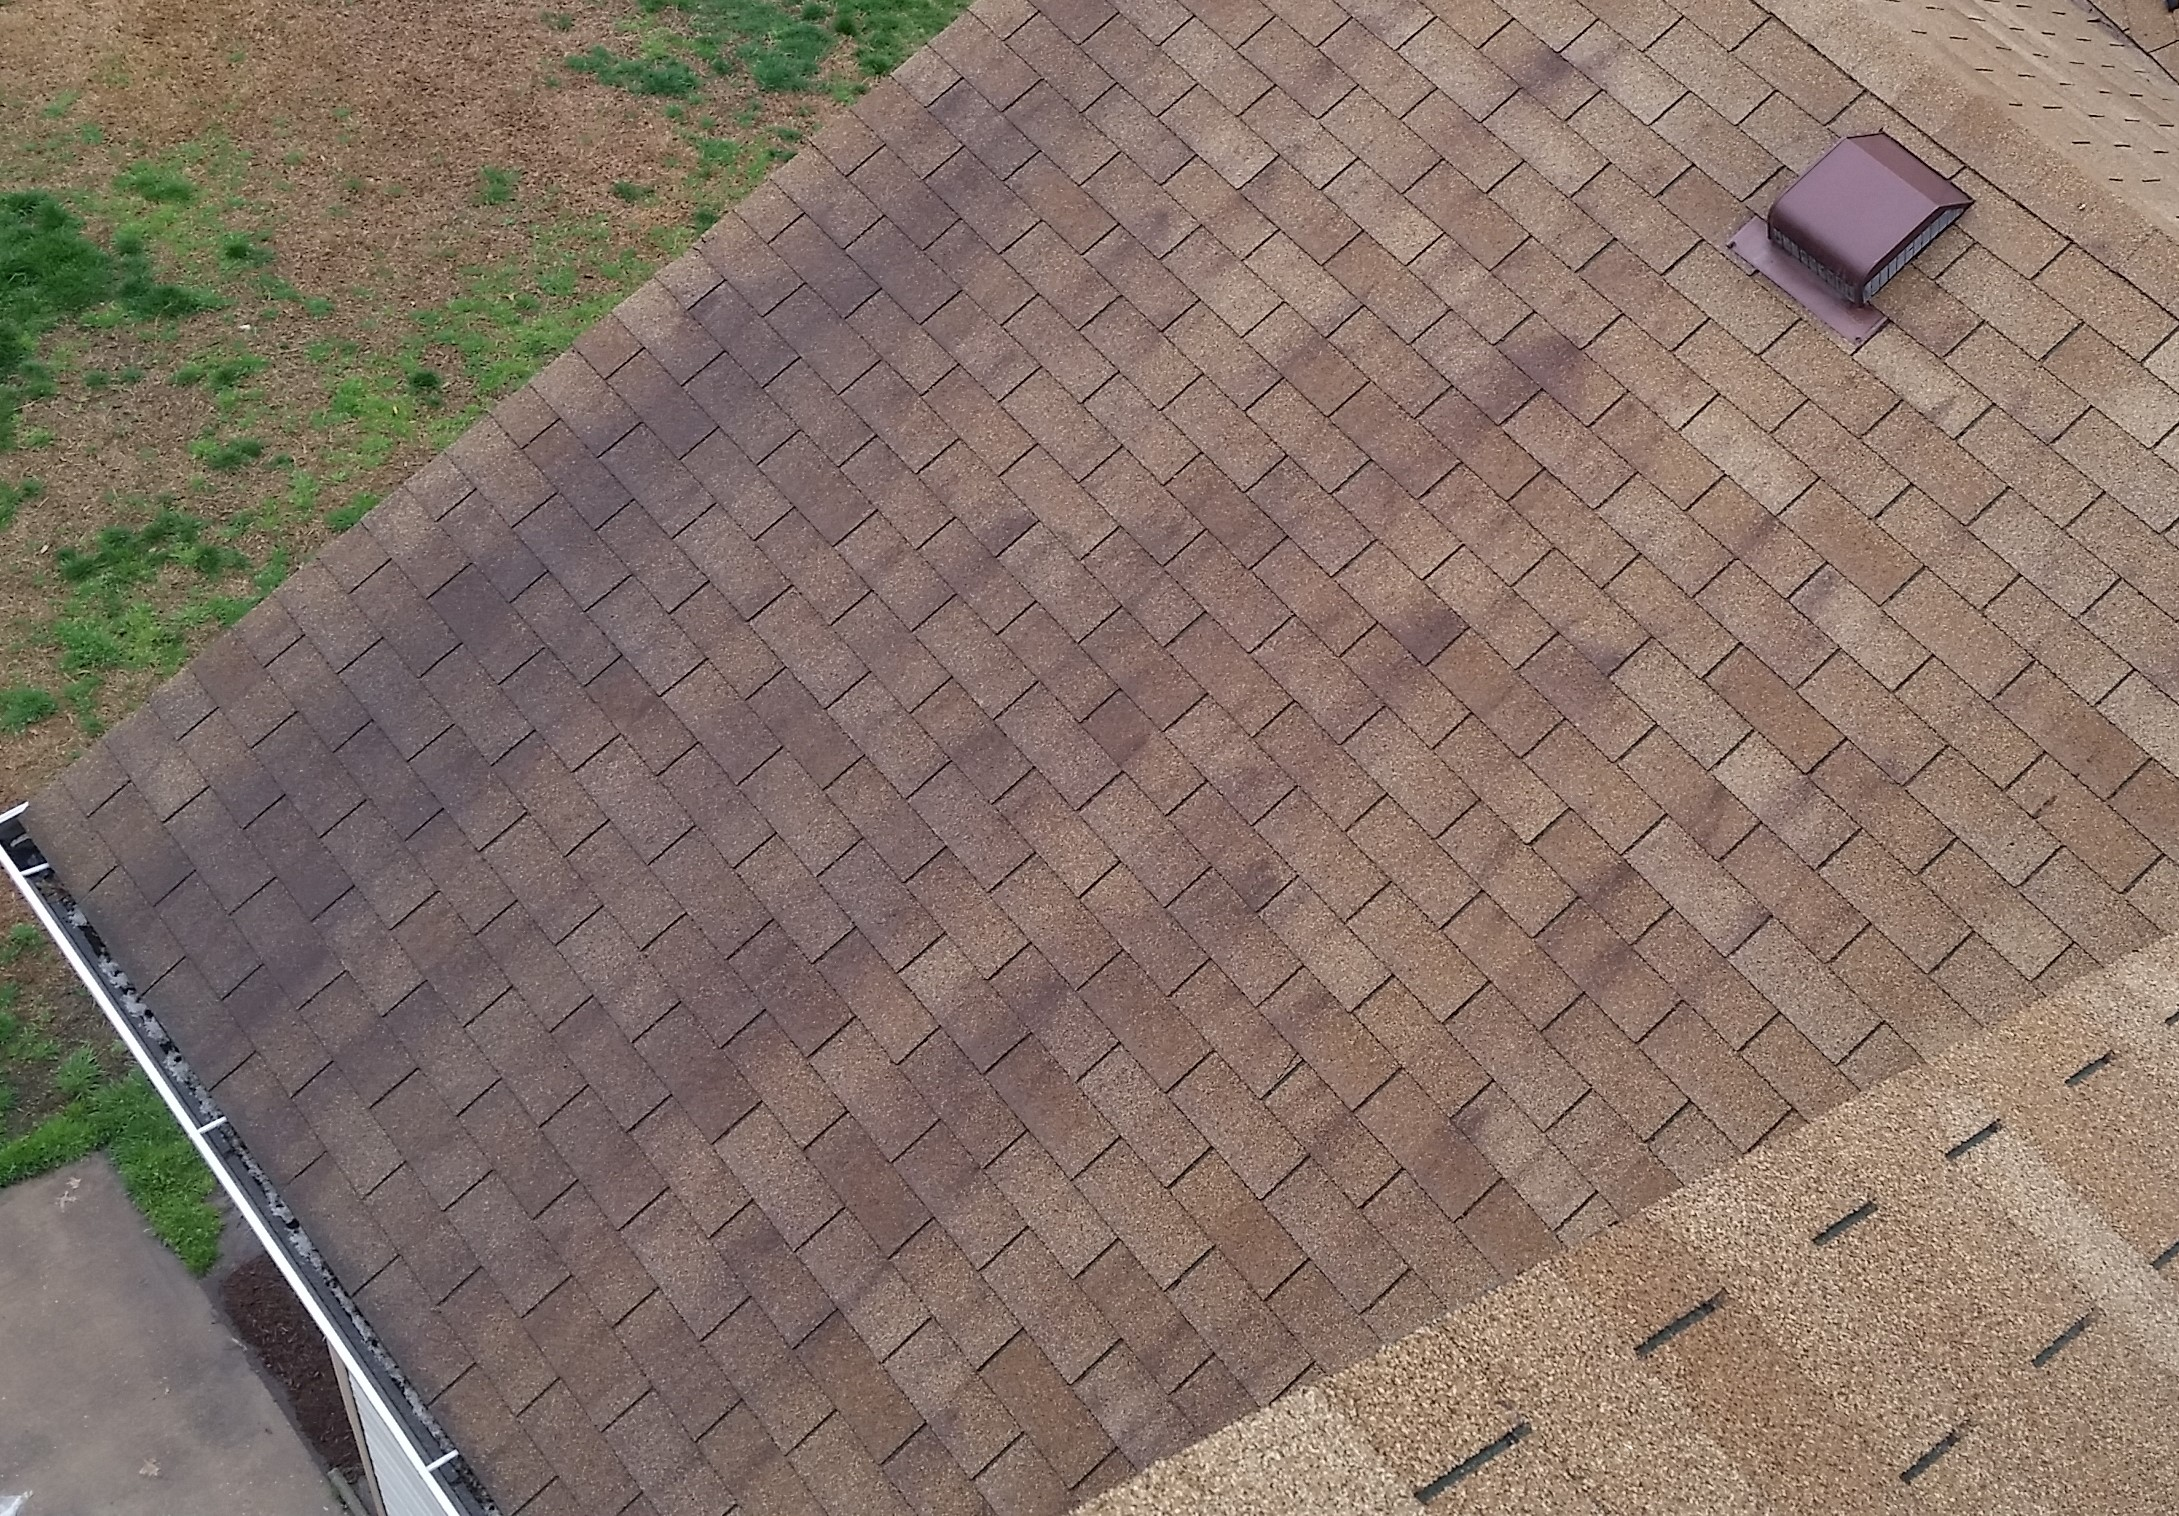 What Are The Black Streaks On My Shingle Roof